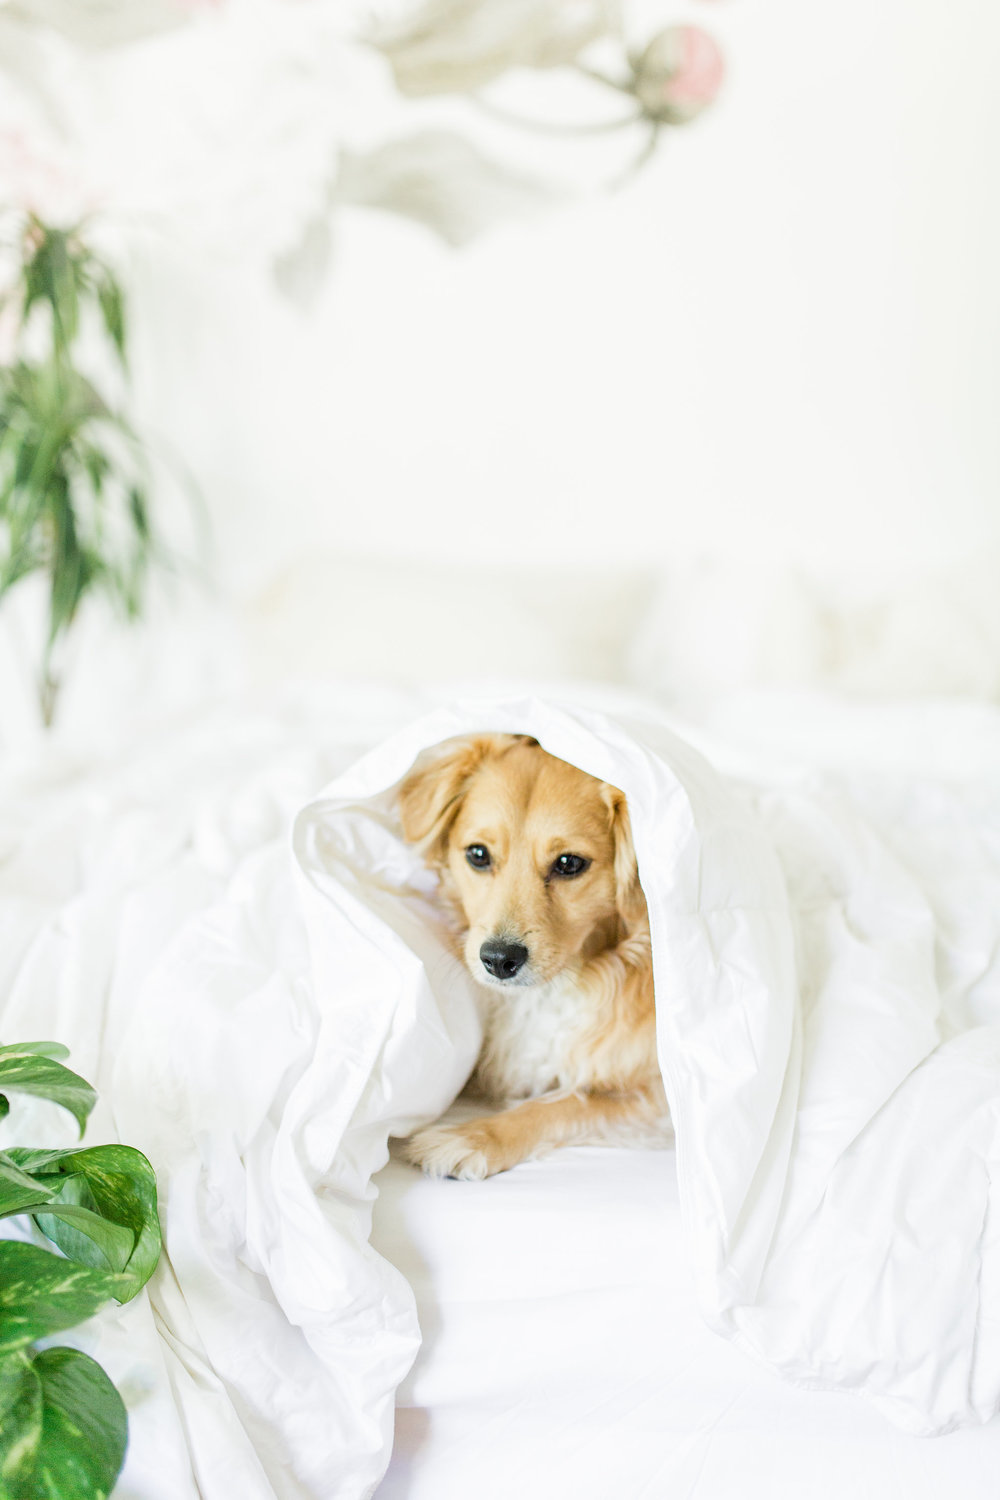 How to Get Better Sleep 3 Quality Bedding Basics To Build your Sanctuary The Company Store Review Joyfullygreen puppy bed.jpg